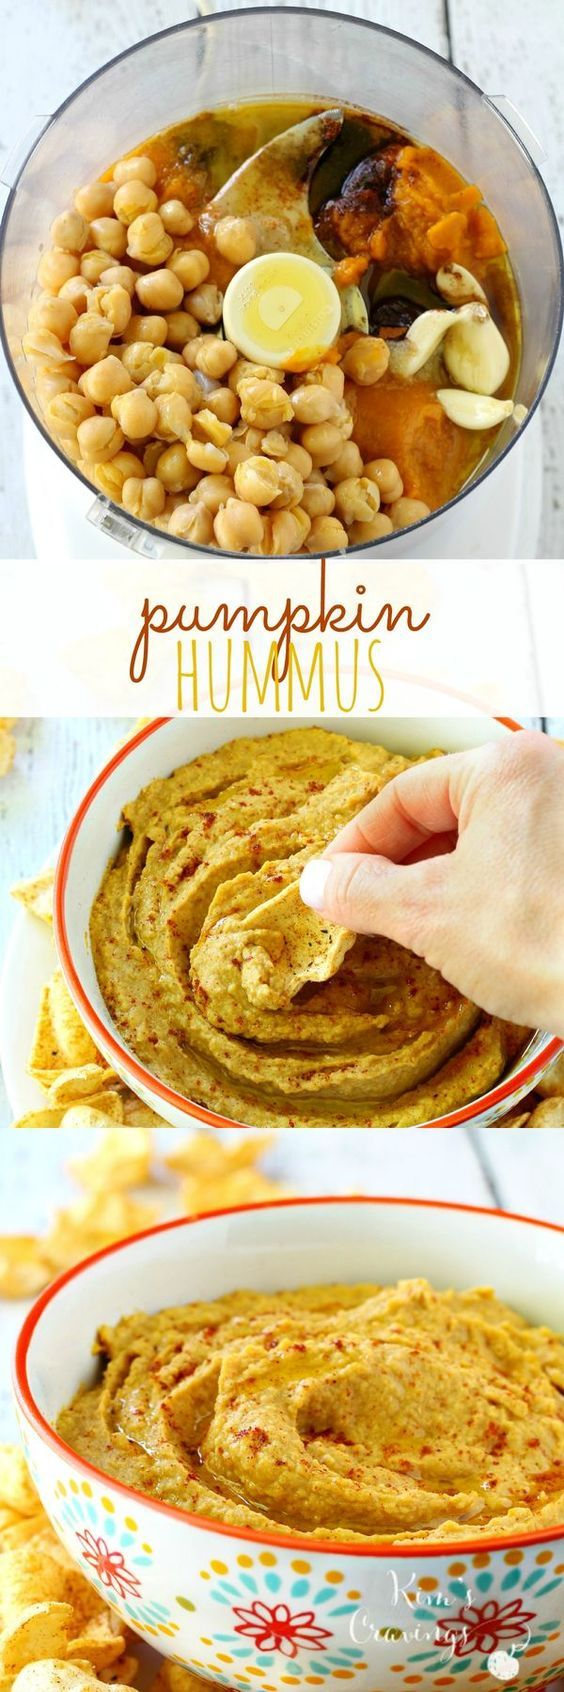 Traditional hummus gets a major kick of flavor with everyone's favorite fall fruit in this healthy pumpkin hummus! vegan gluten-free and dairy-free